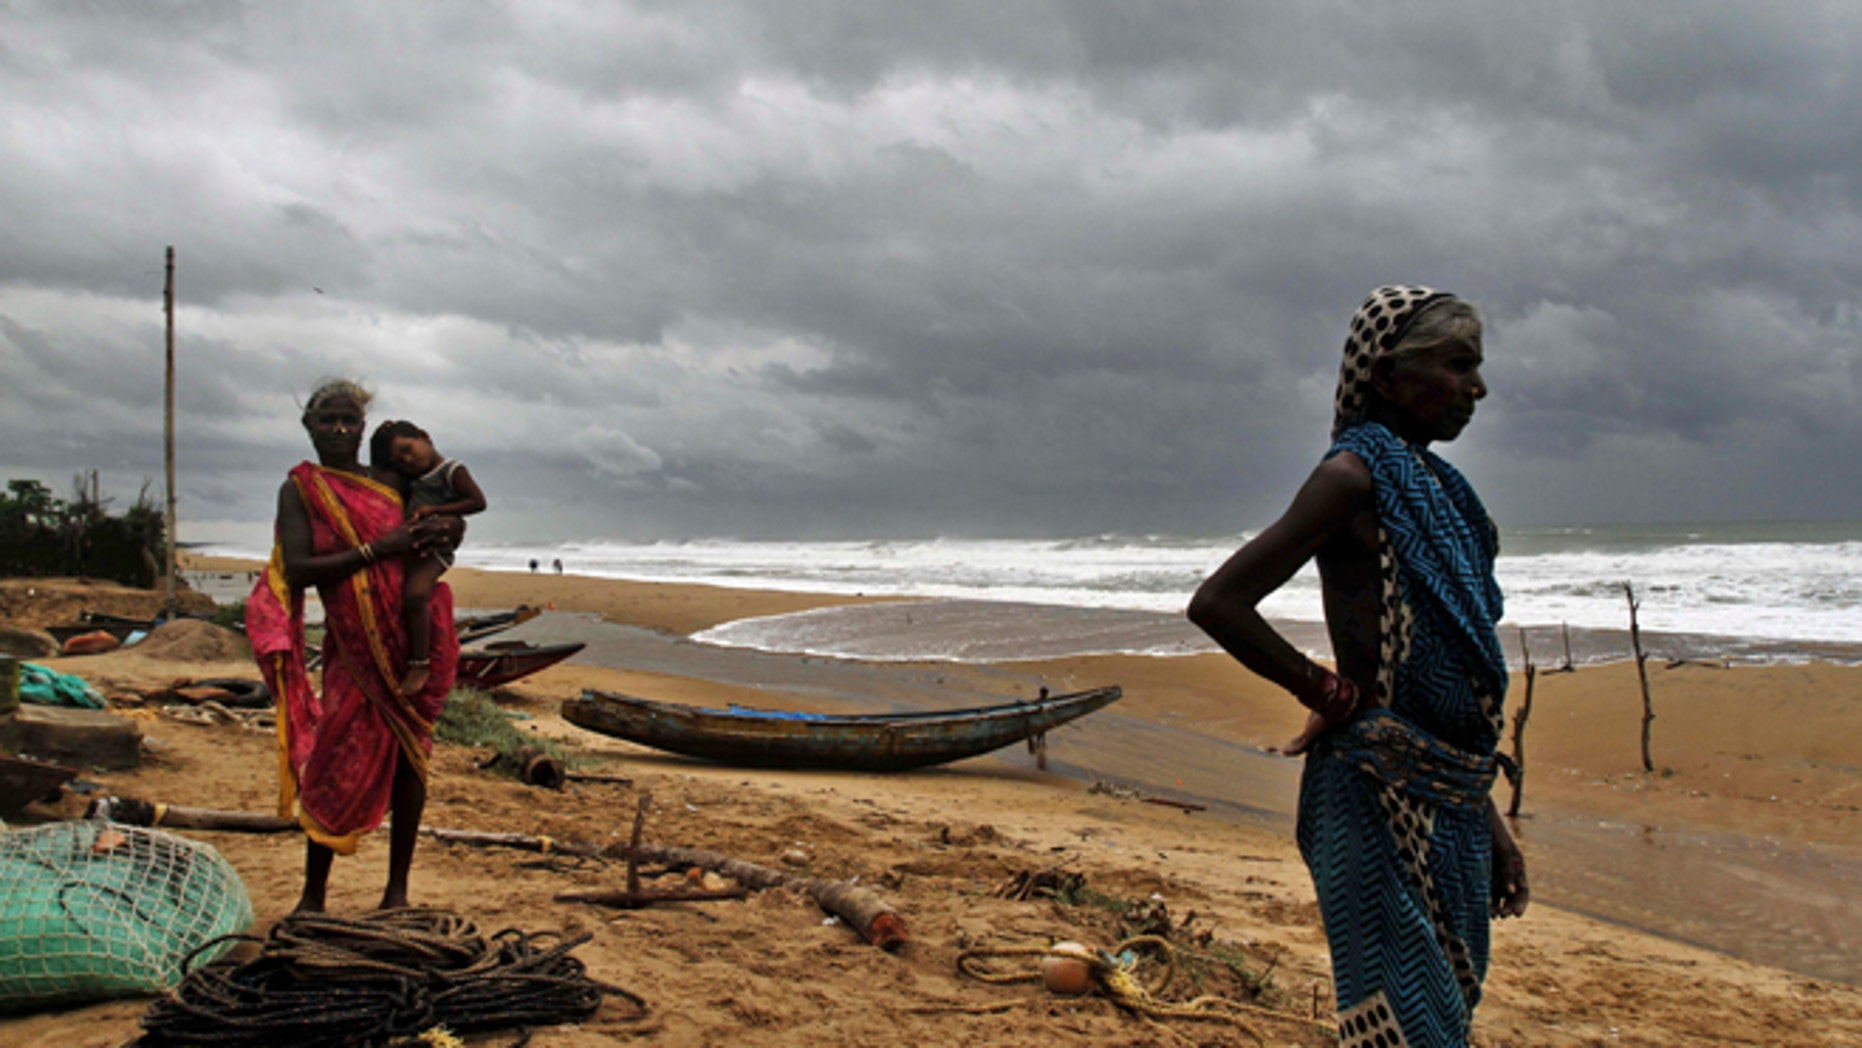 Oct. 11, 2014: Fisherwomen watch the sea waves before evacuating the place near Podampeta village, on the outskirts of Gopalpur beach in Ganjam district, 140 kilometers (87 miles) south of Bhubaneswar, India.